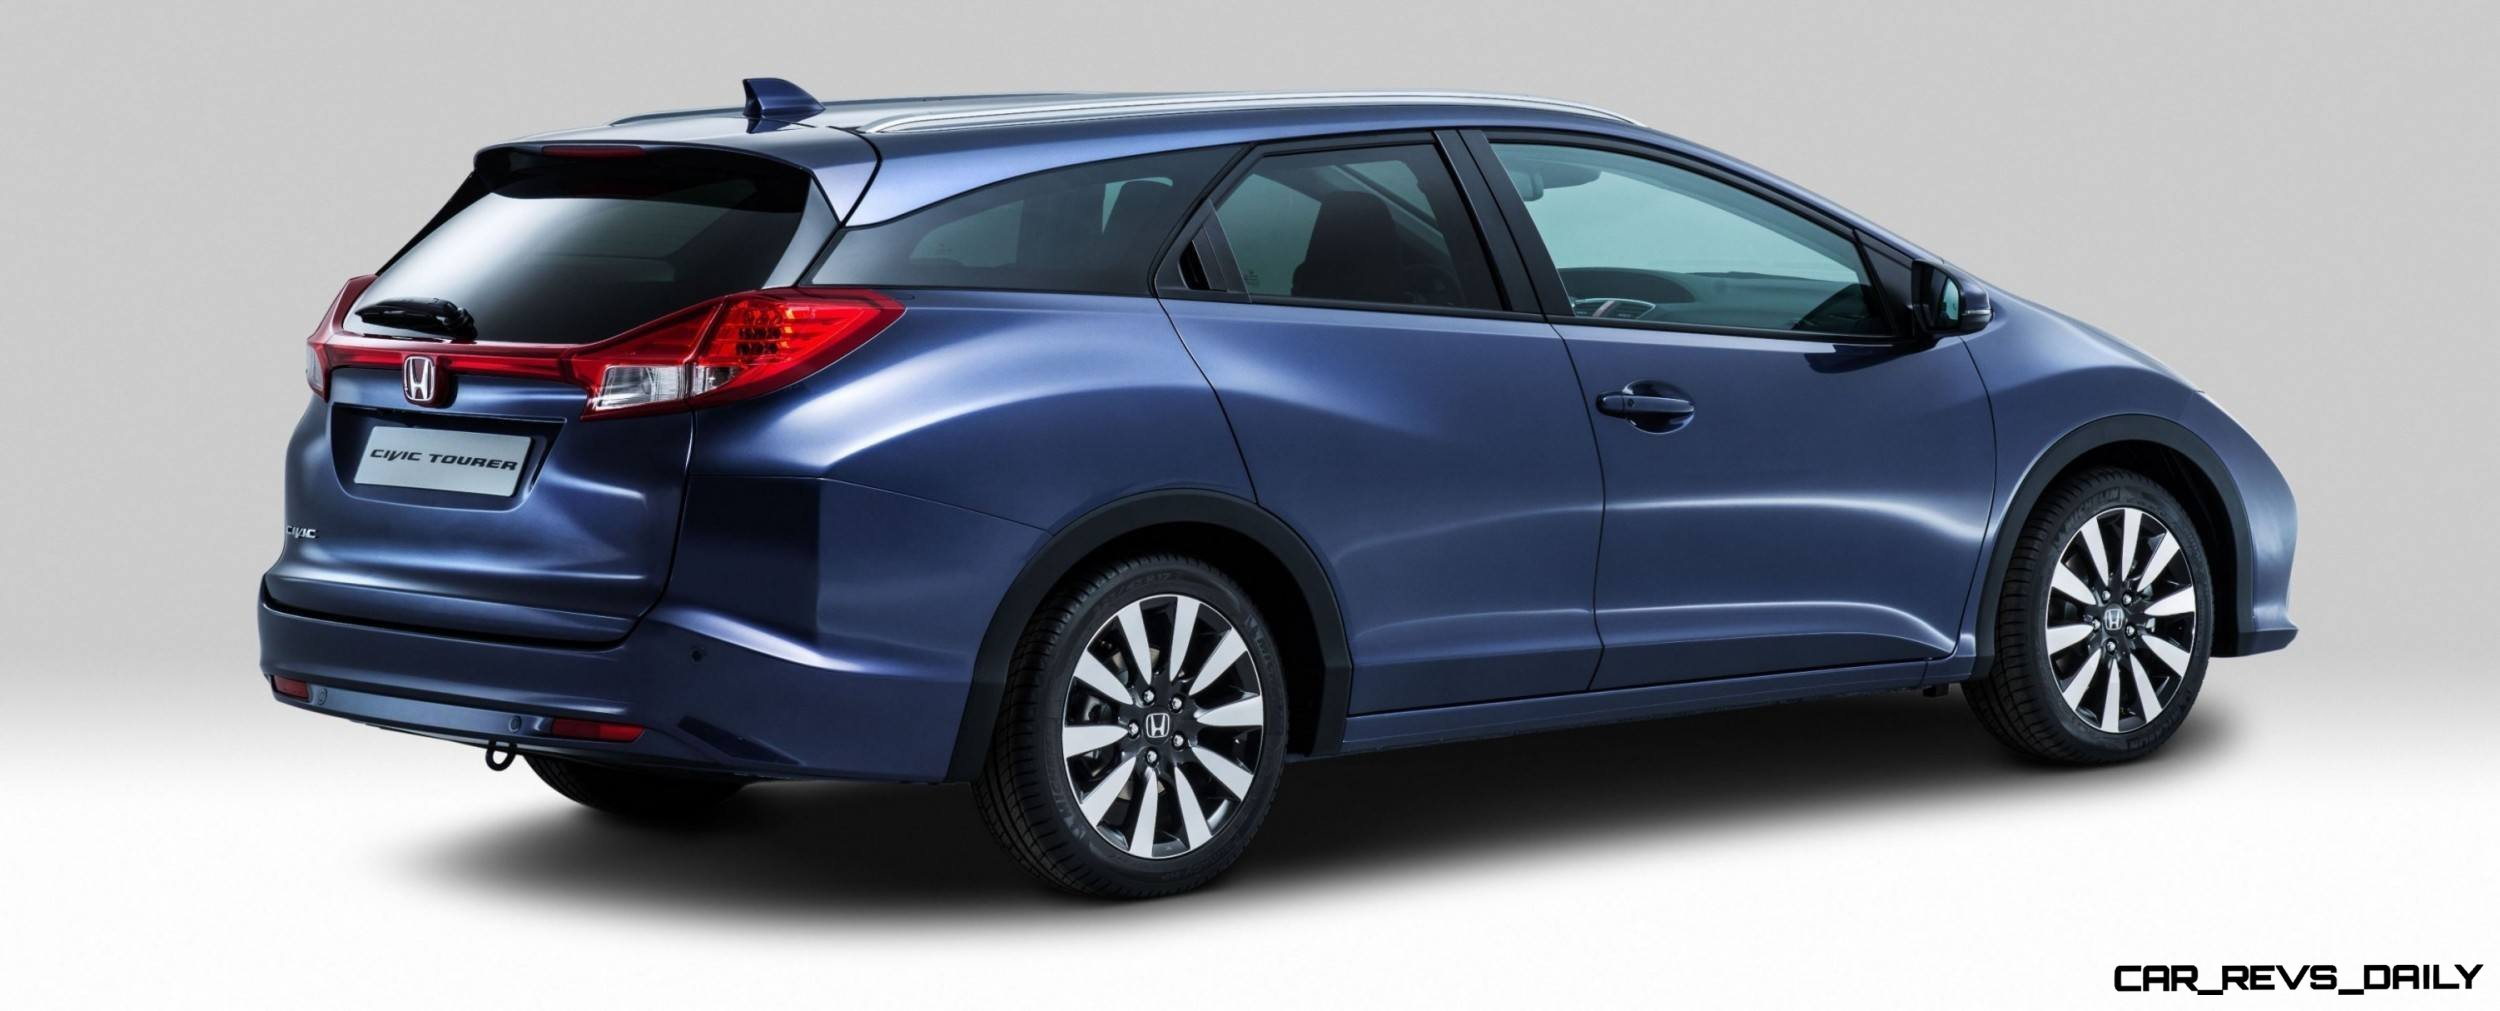 uk honda civic tourer touts inner beauty but this wagon. Black Bedroom Furniture Sets. Home Design Ideas